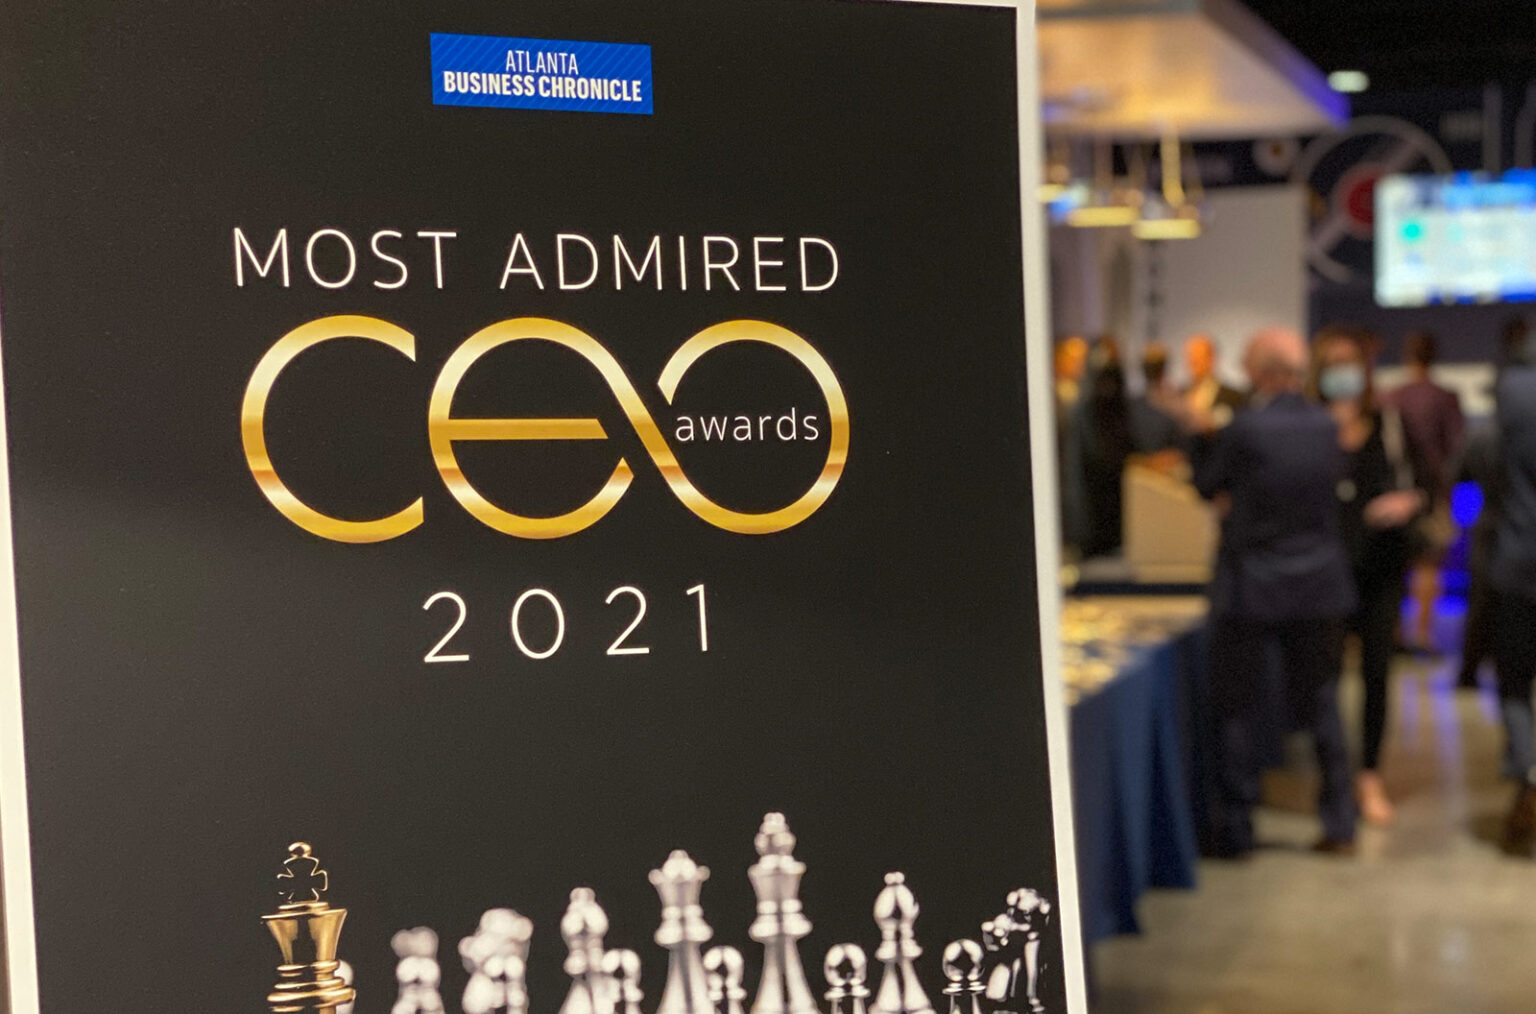 Eberly & Associates CEO Selected by Atlanta Business Chronicle as  Most Admired CEOs of 2021